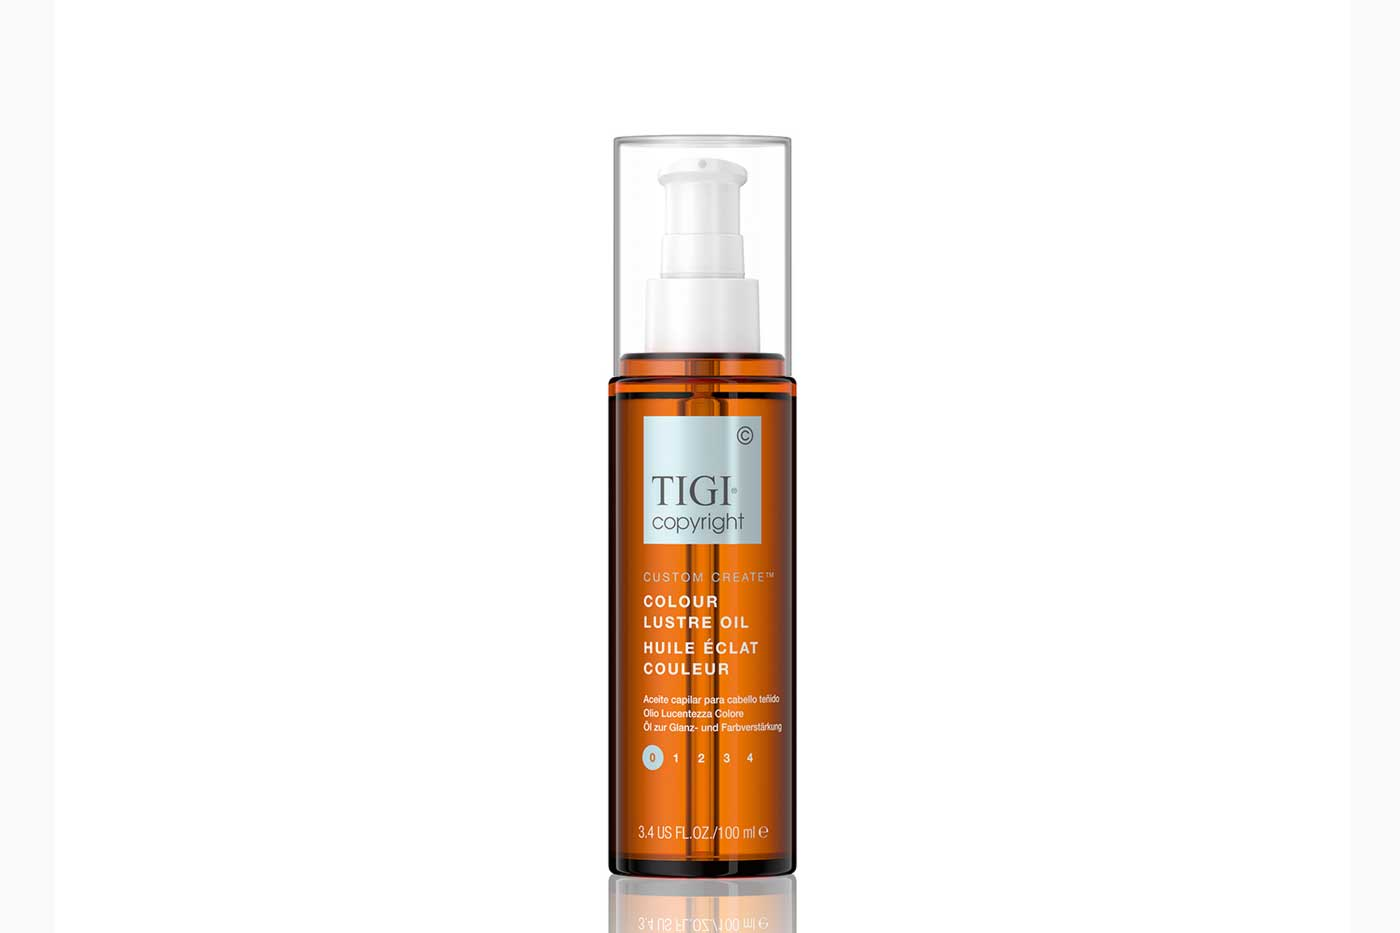 Tame frizzy hair with TIGI Copyright